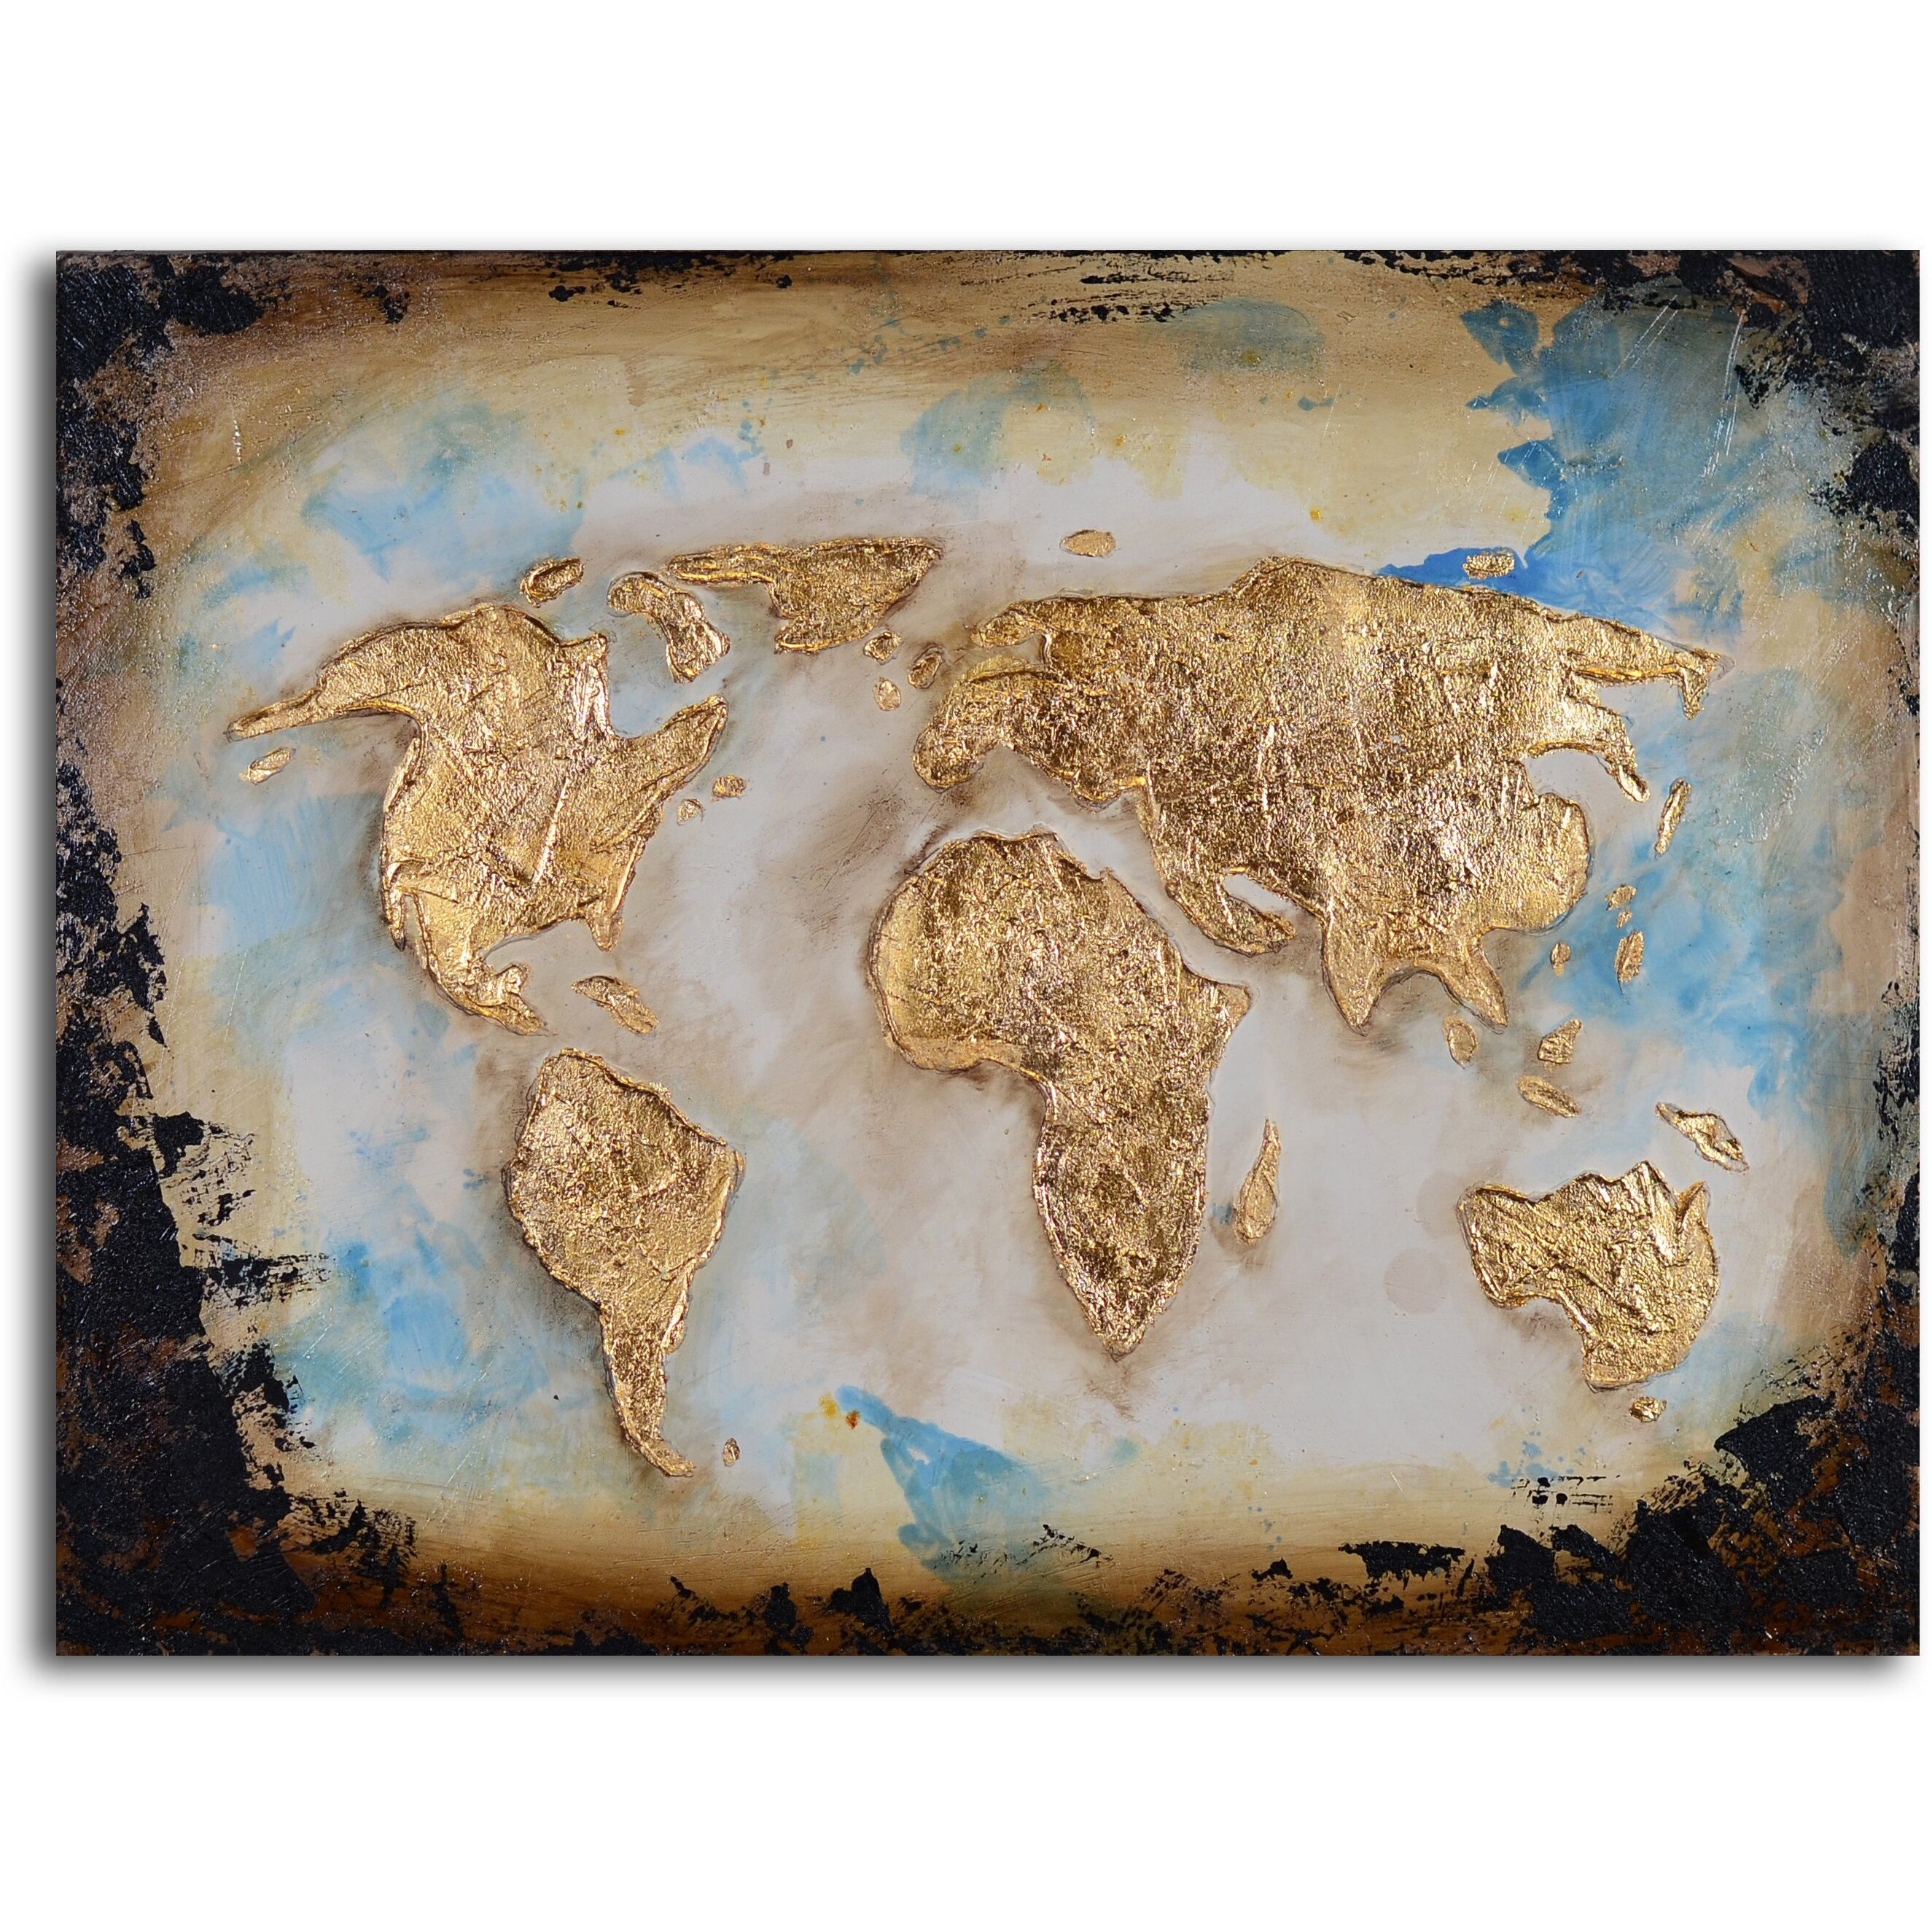 Co color art printing anchorage alaska - My Art Outlet Golden Globe Painting On Wrapped Canvas